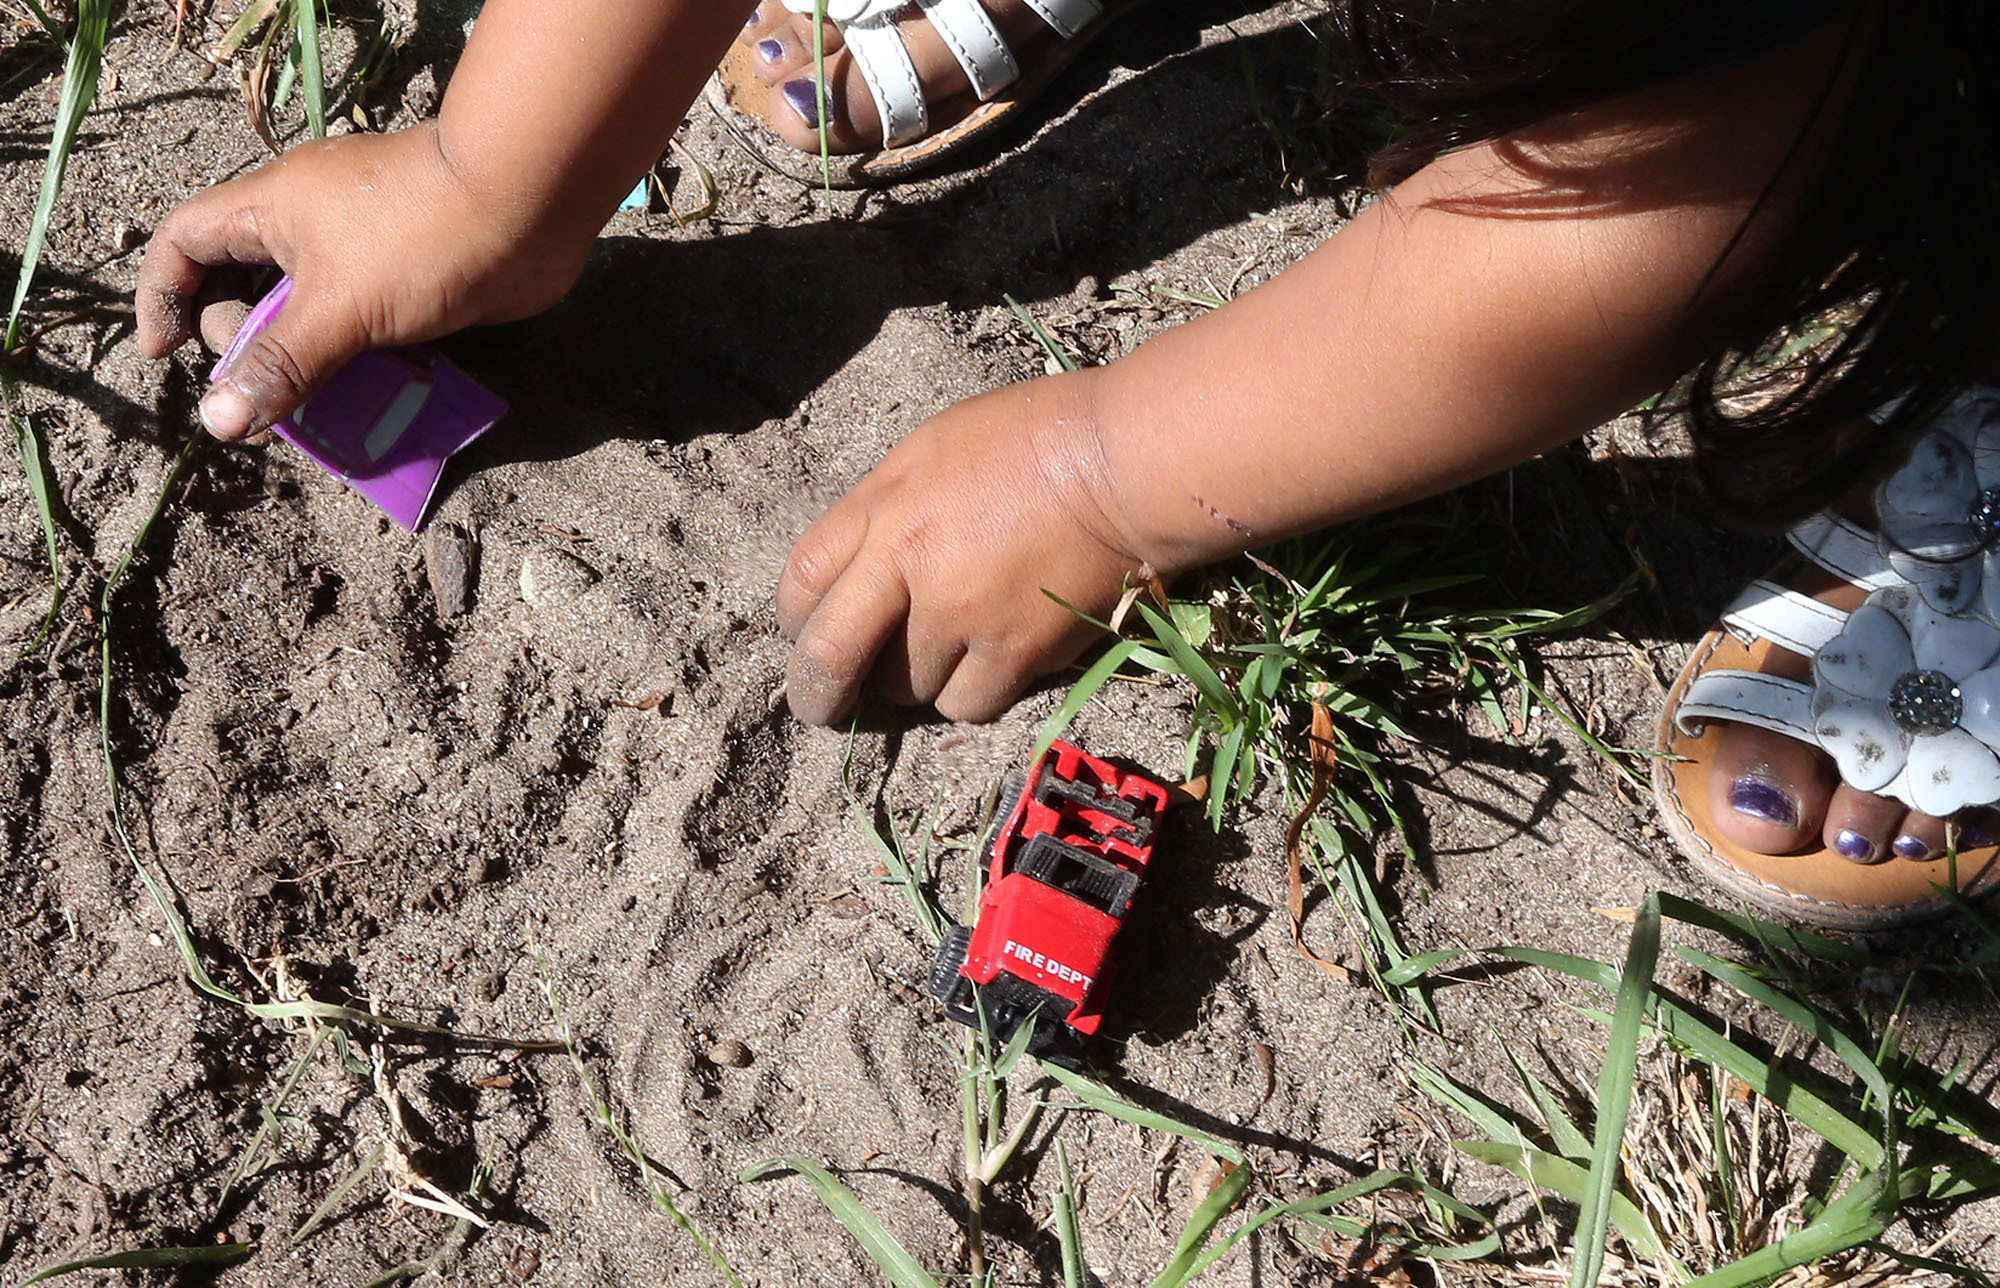 young kid playing in dirt in Santa Ana